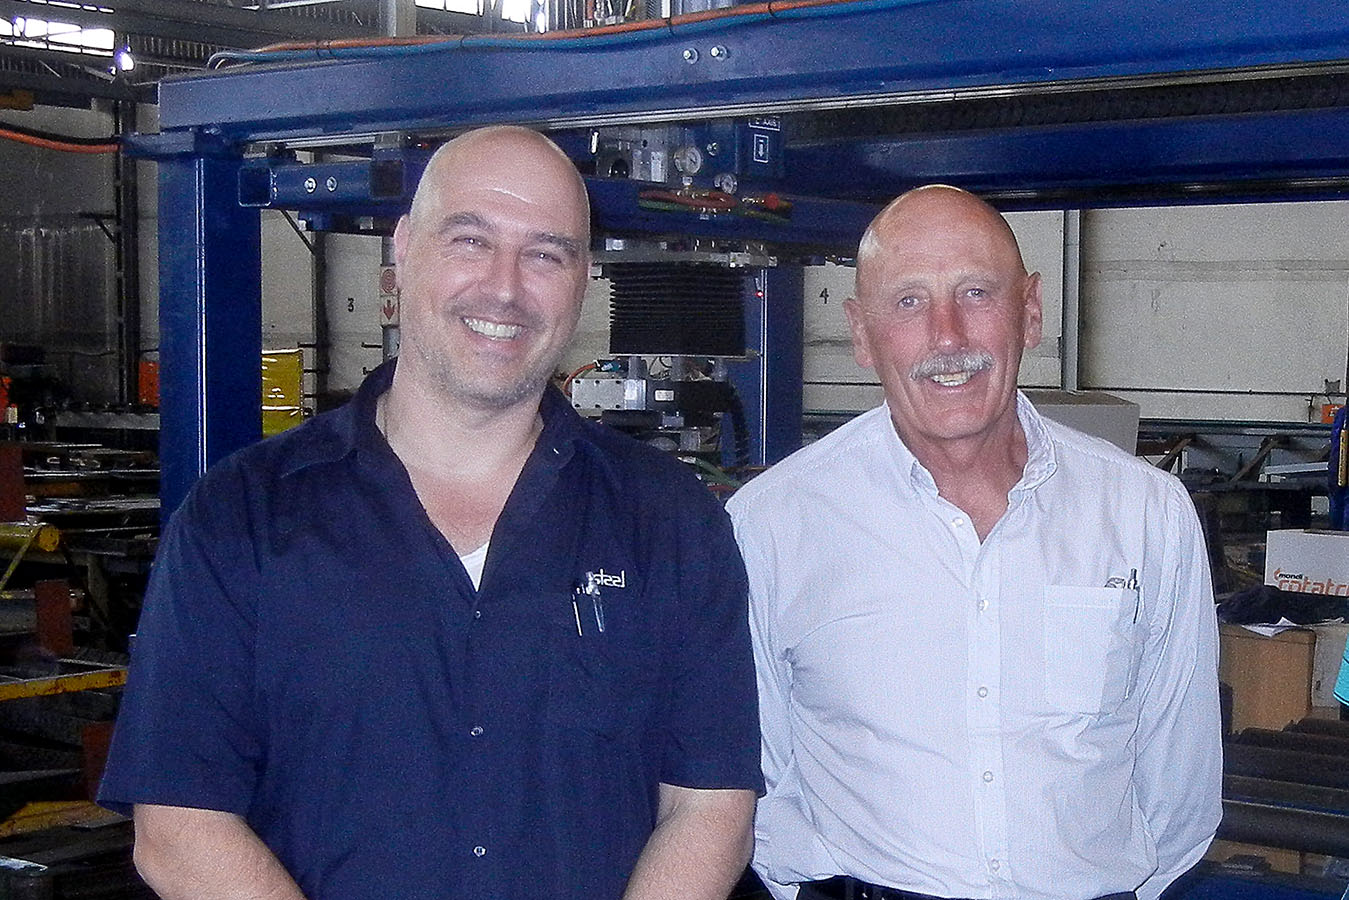 1.Michael Papanicolaou of Union Steel with Ray Chellew of Skok Machine Tool